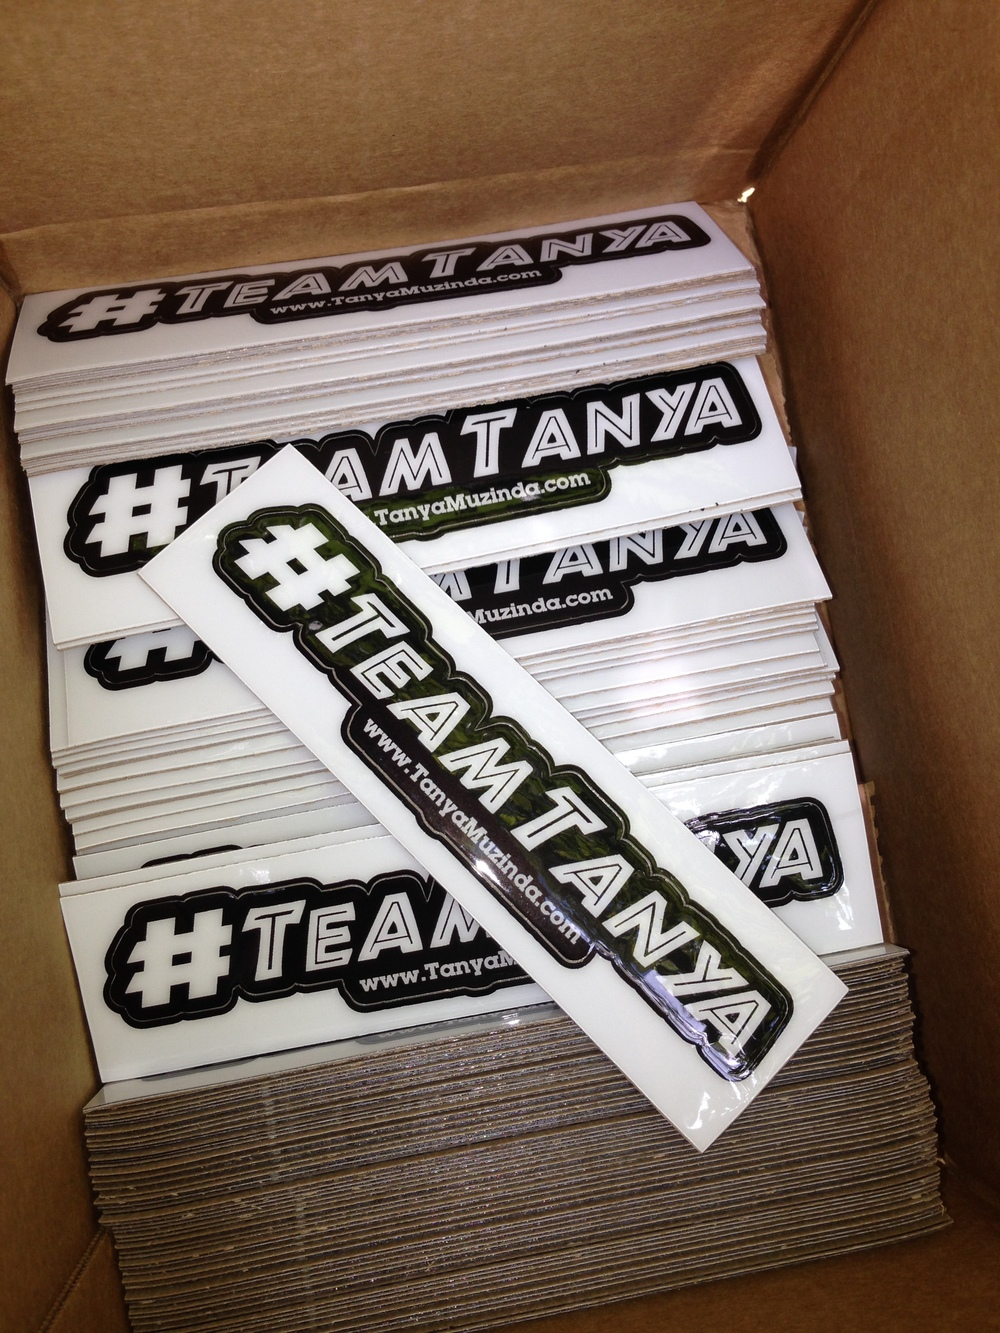 #TEAMTANYA stickers